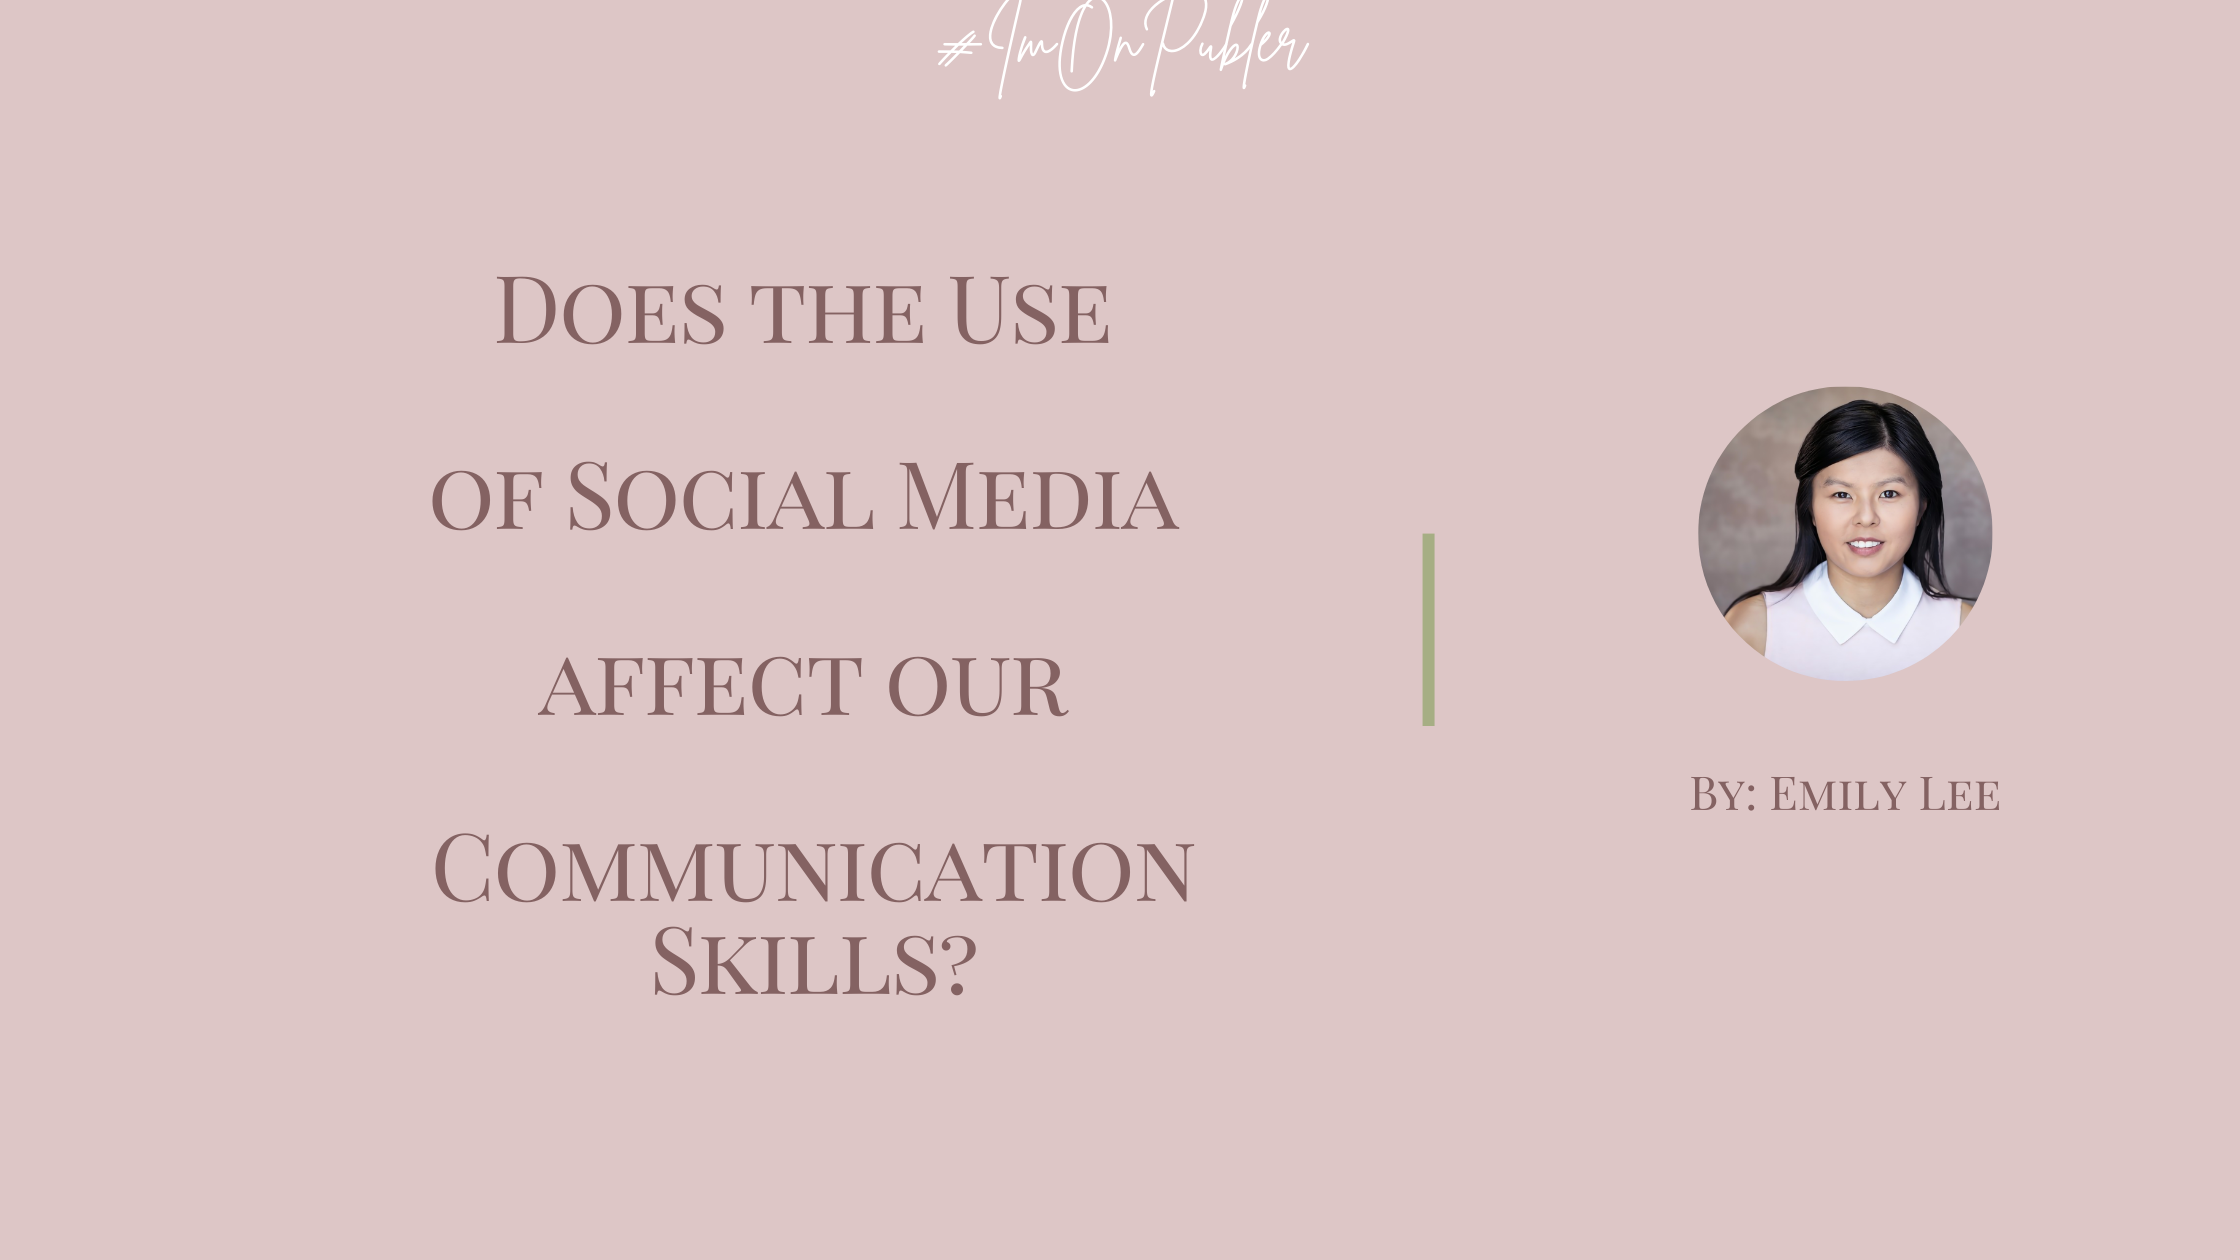 Does the Use of Social Media affect our Communication Skills? by Emily Lee